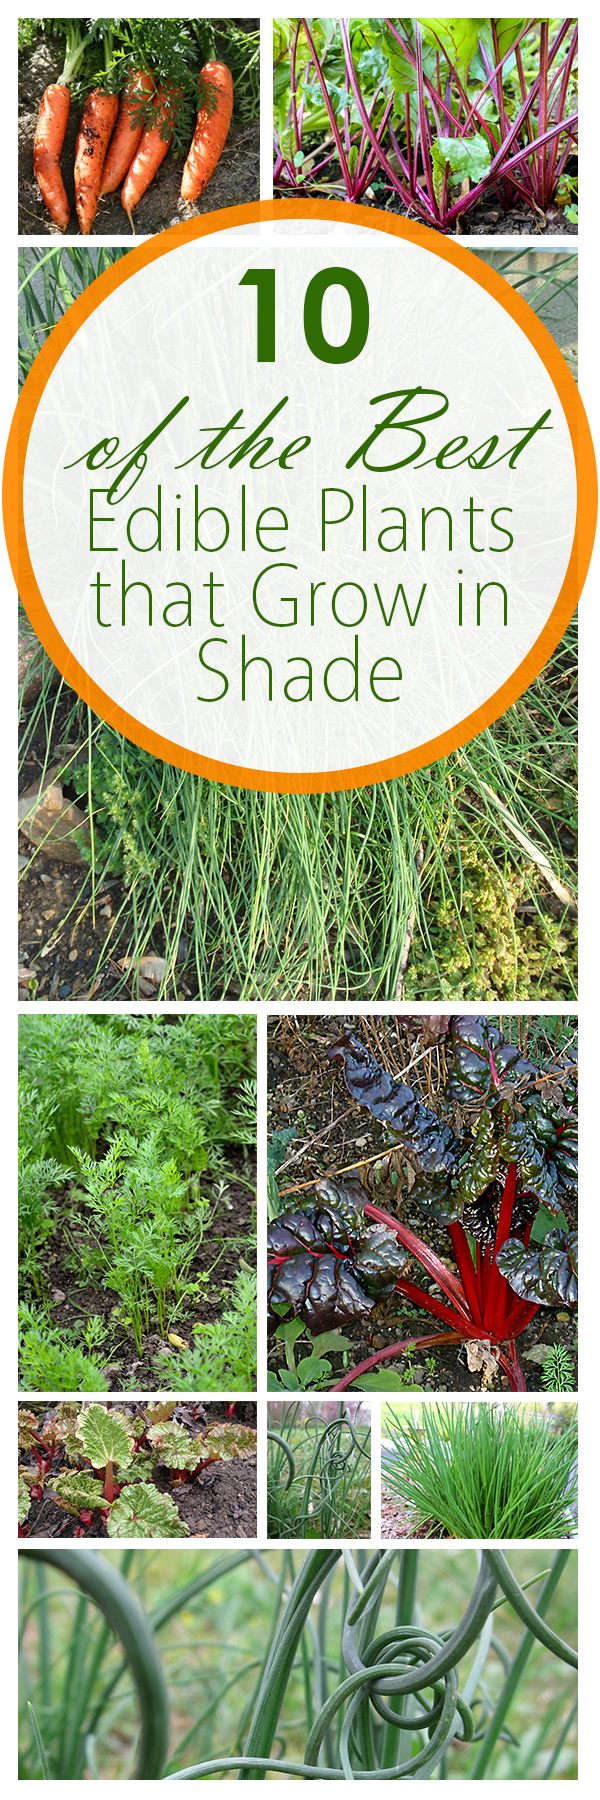 Shade Plants, Edible plants, gardening hacks, gardening tips, easy gardening ideas, popular pin, DIY gardening, vegetable gardening hacks, edible garden.